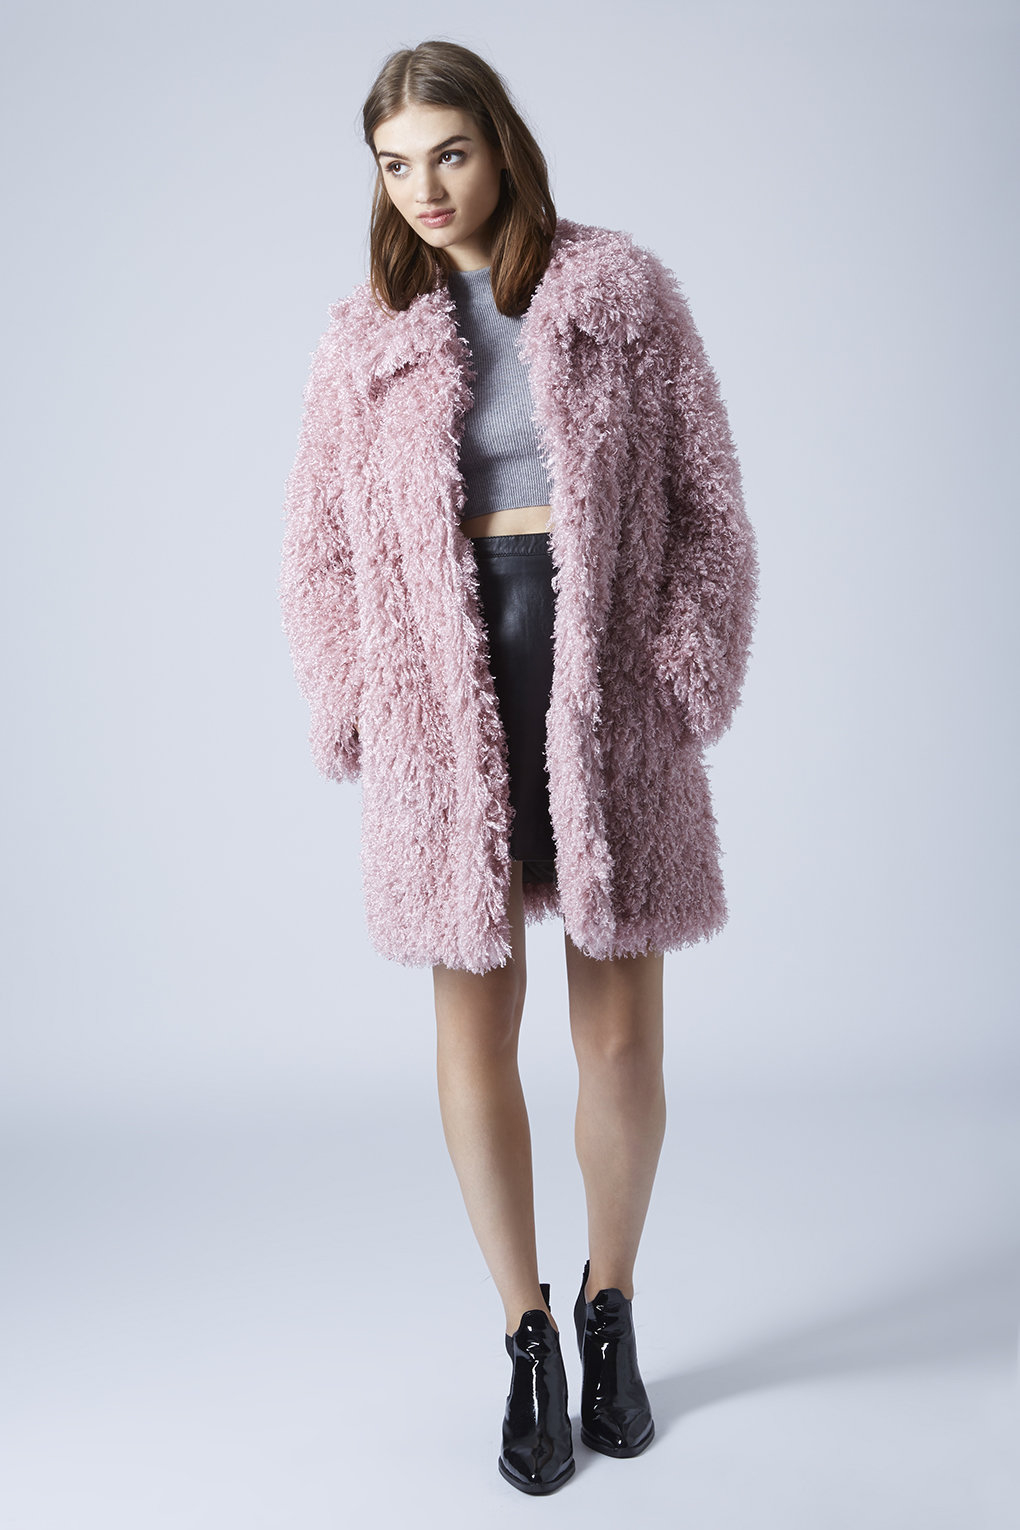 Topshop coats women